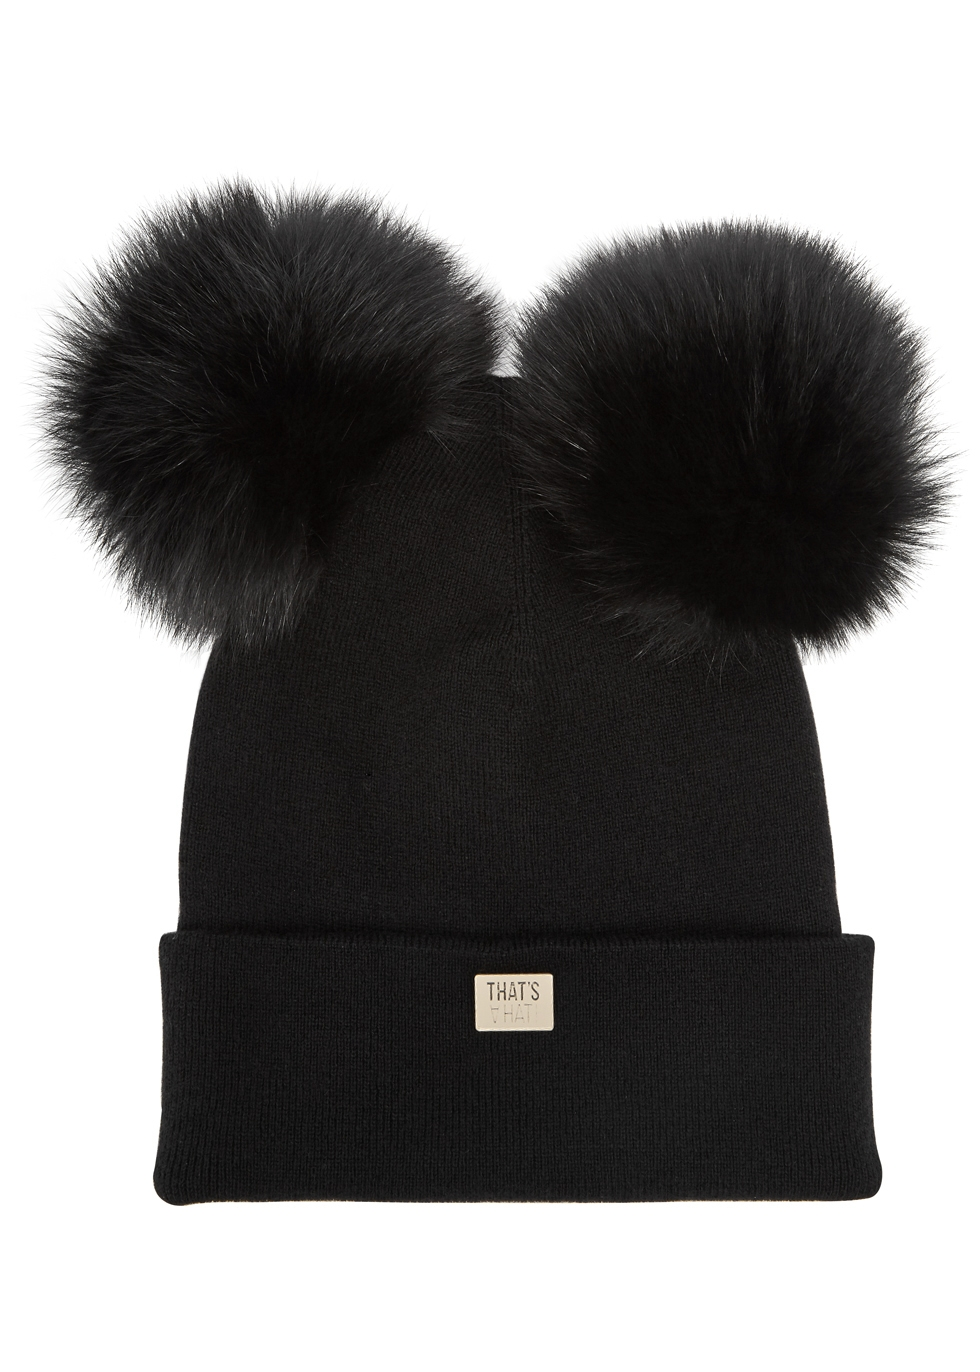 e7ab6c975 best price baby boy knitted pom pom hats value d4994 3c971